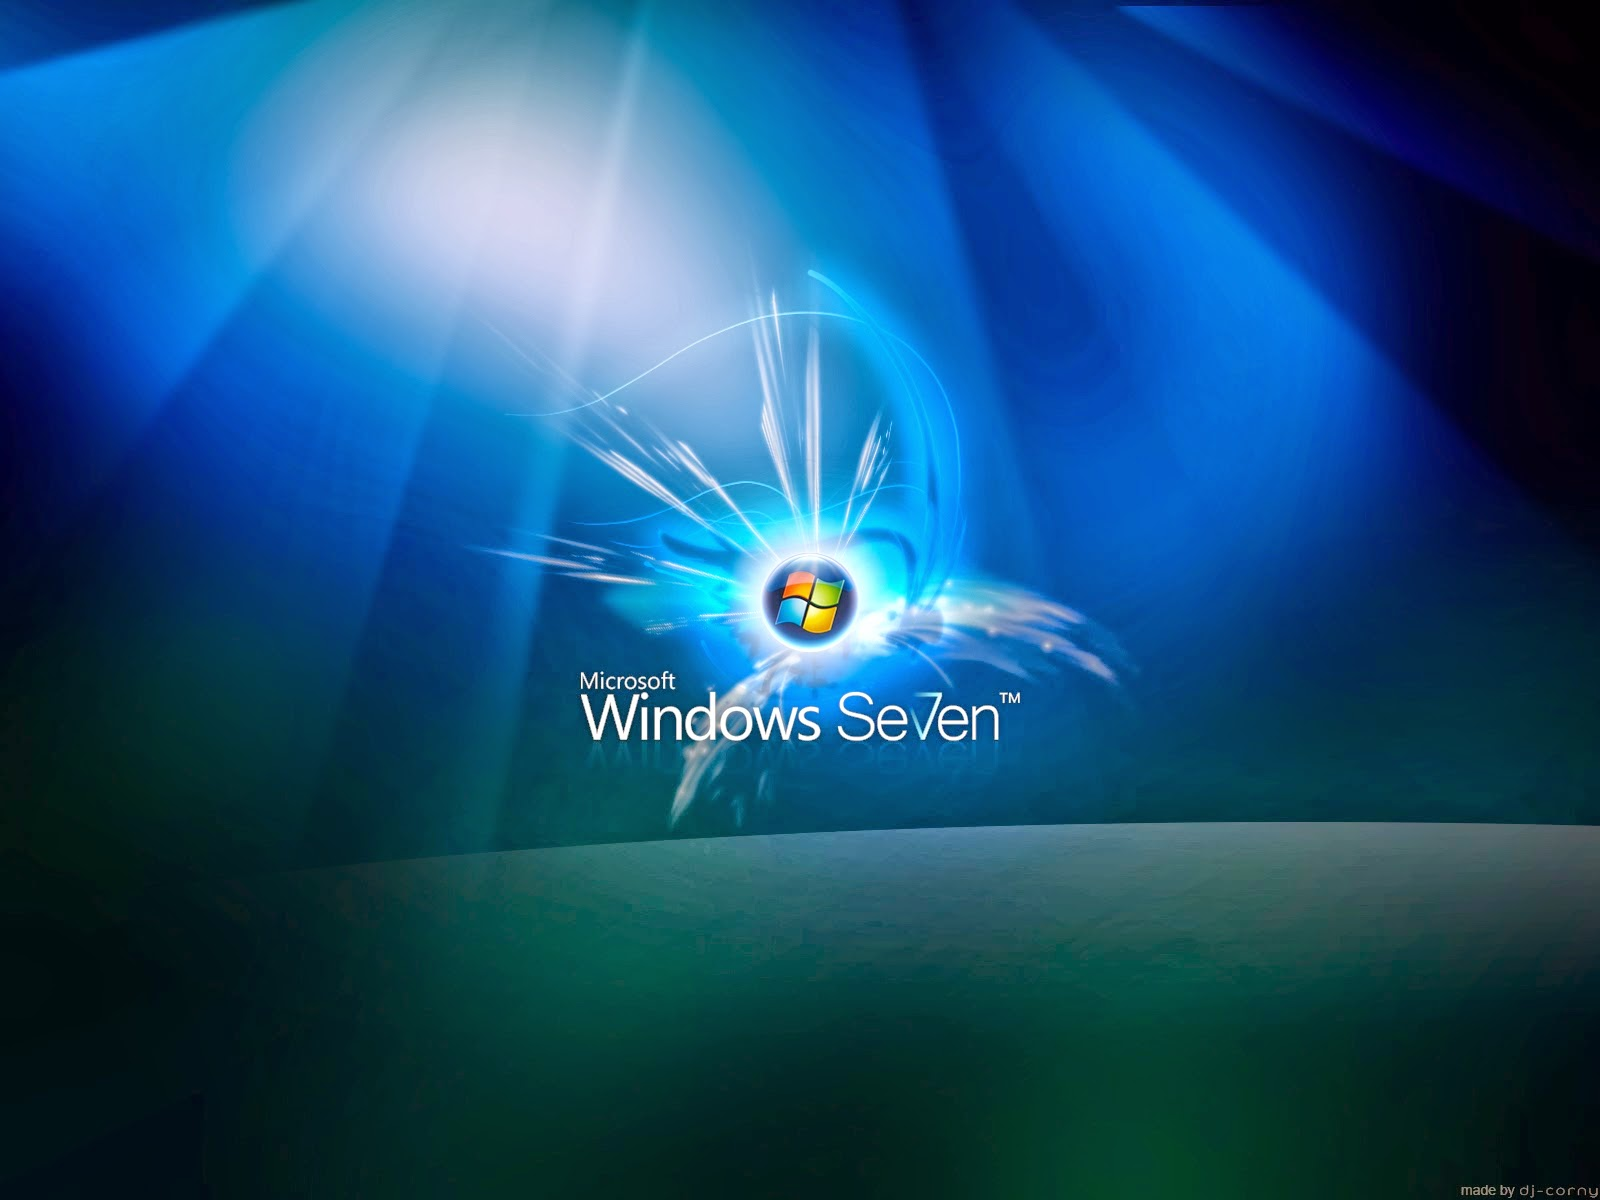 https://www.intowindows.com/download-windows-7-sp1-home-premium-and-ultimate-iso-from-microsoft/